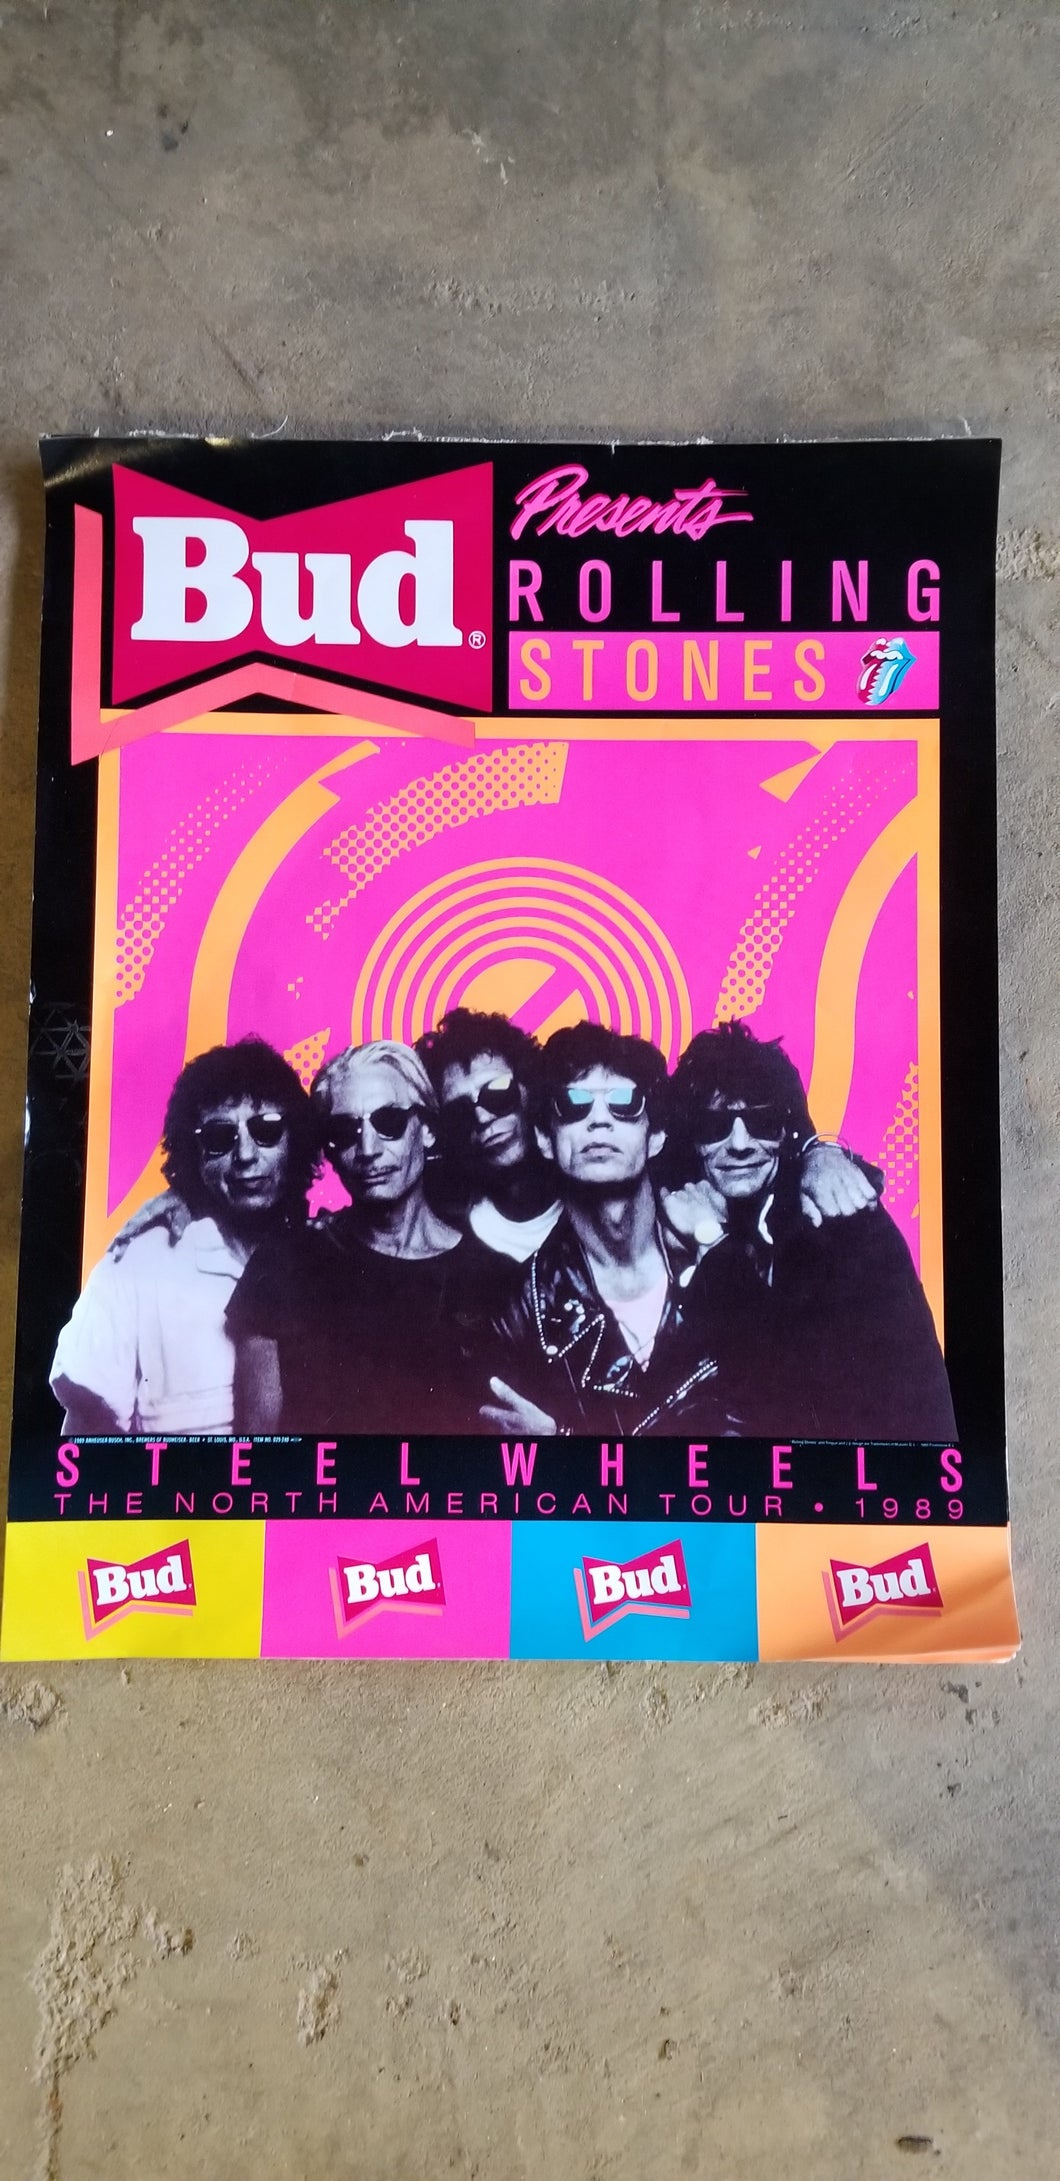 Rolling Stones Steel Wheels 1989 tour poster